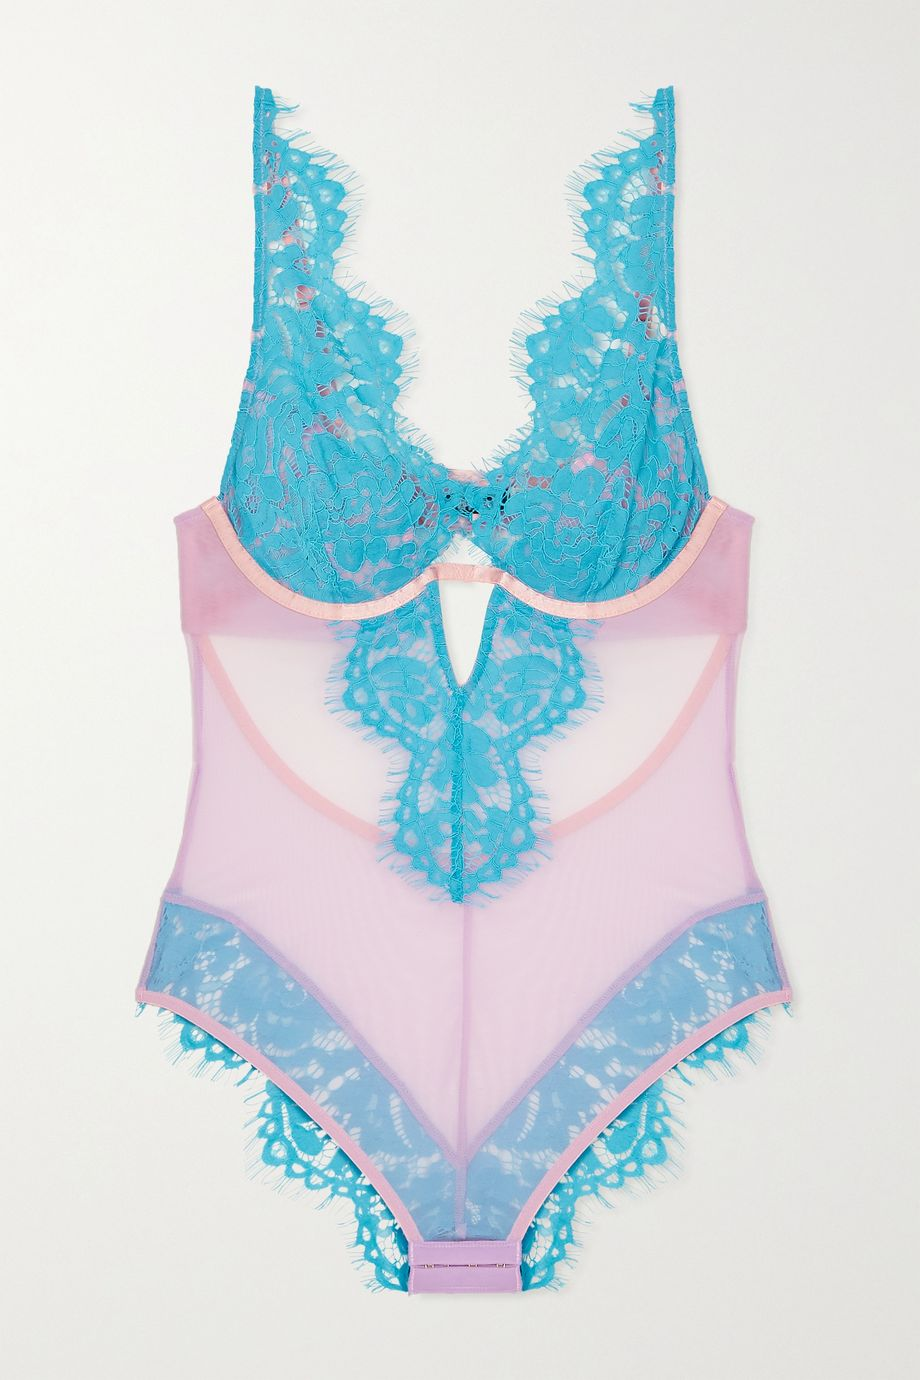 Dora Larsen Lucia stretch-tulle and lace underwired bodysuit